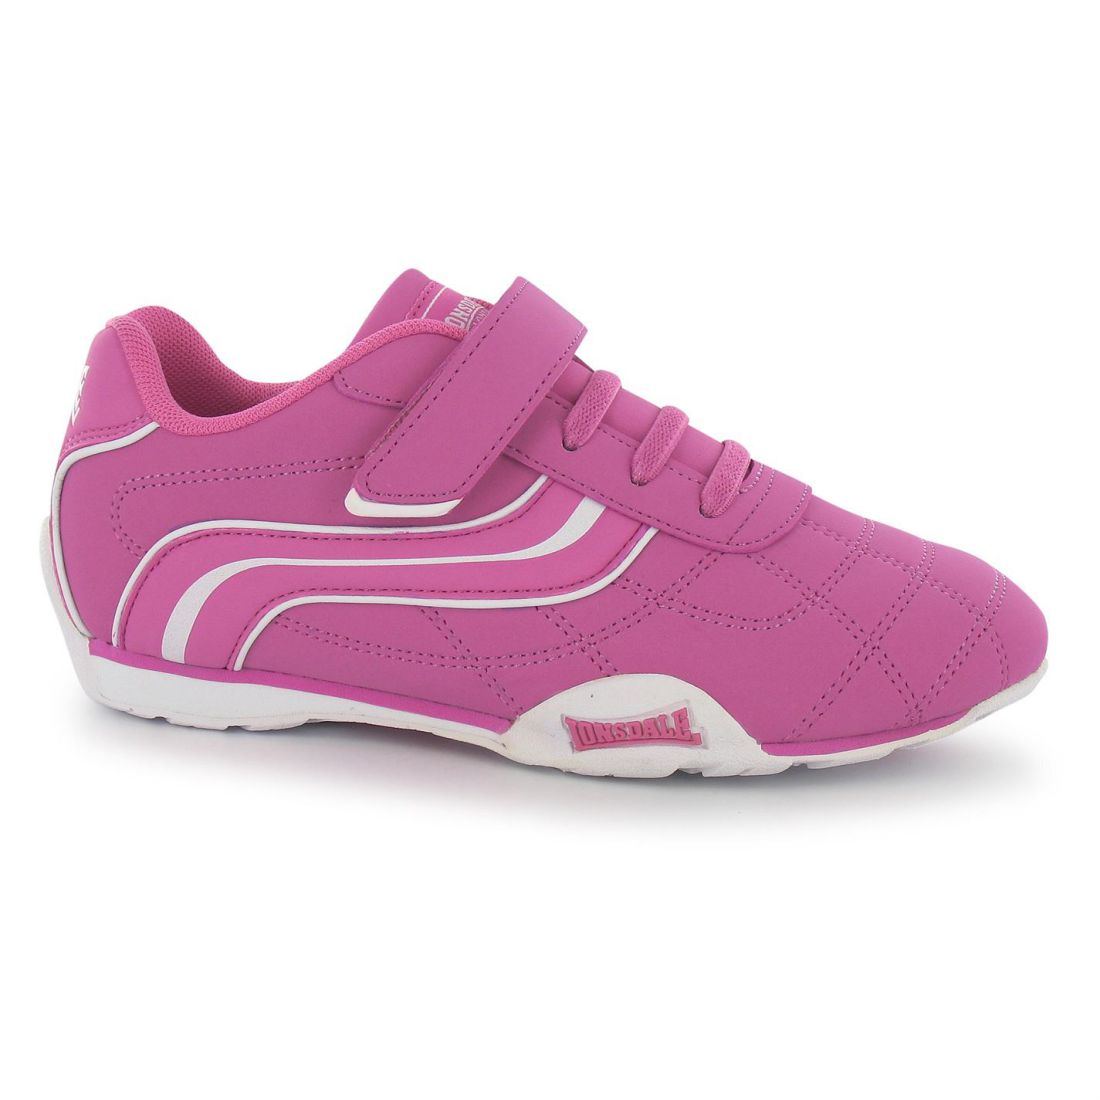 7ed8810bd4cd Image is loading Lonsdale-Childrens-Camden-Child-Boys-Sneakers-Trainers -Casual-